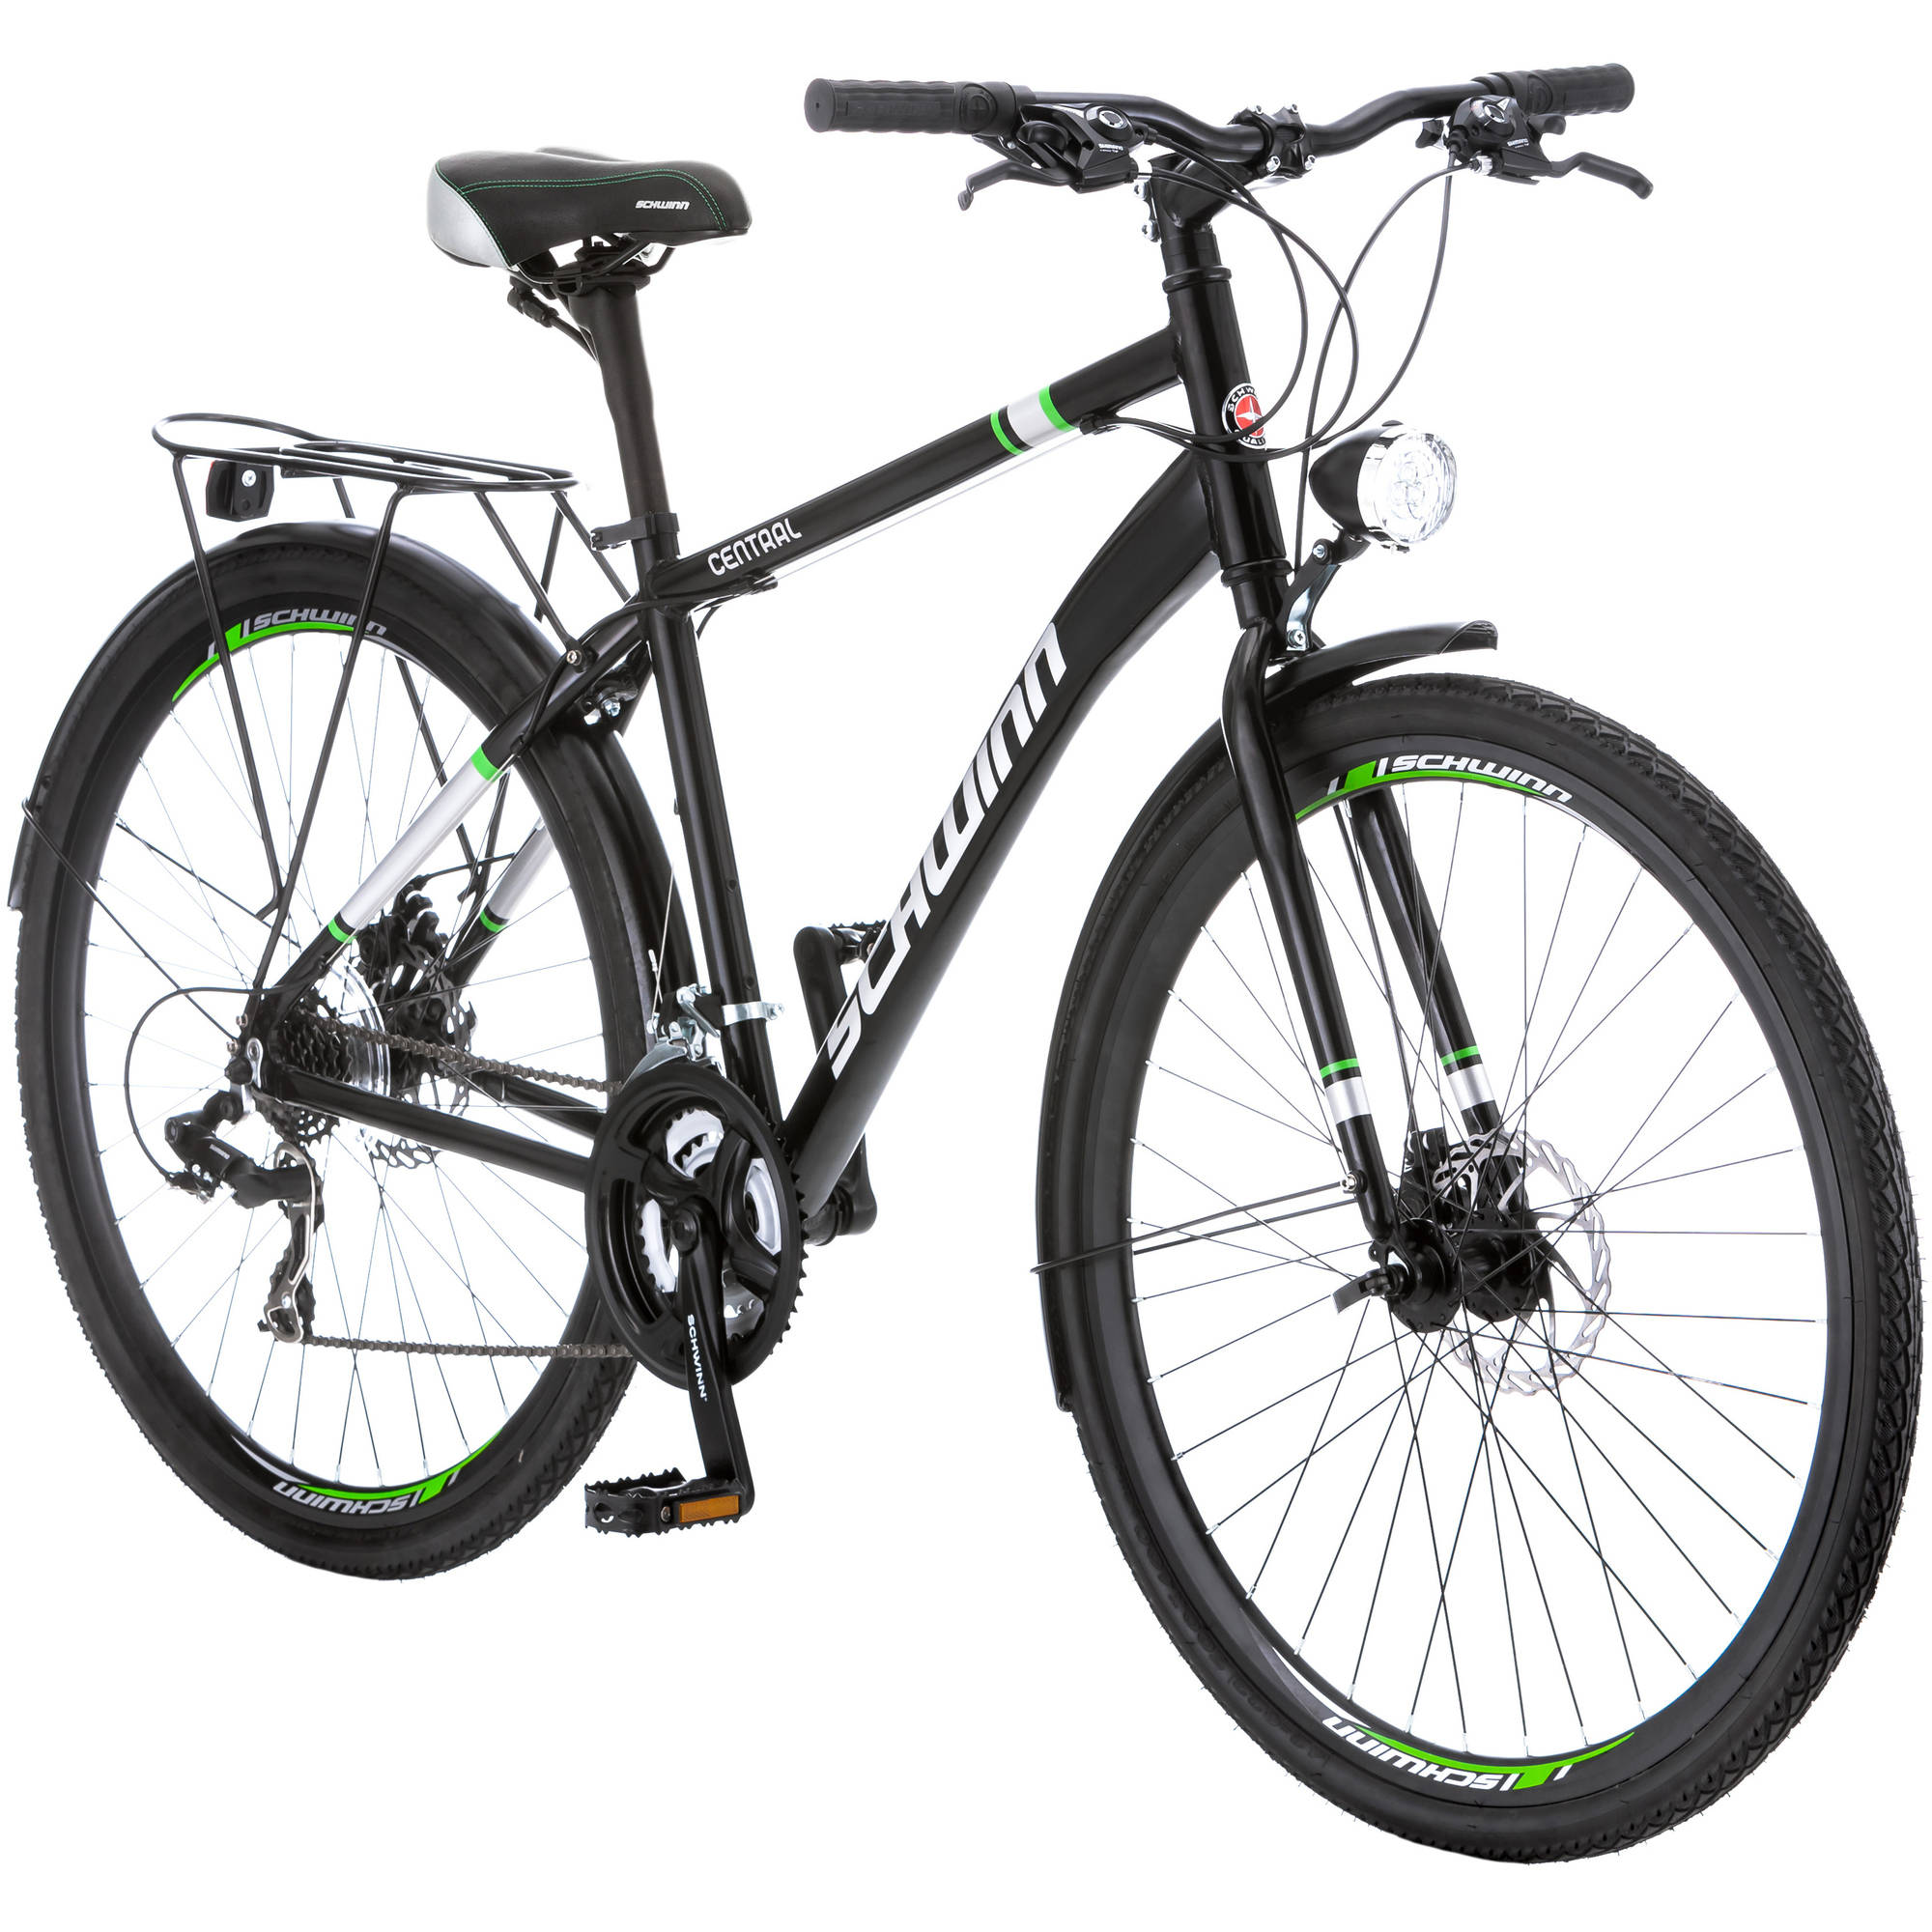 Click here to buy 700C Schwinn Central Men's Commuter Bike, Black by Pacific Cycle.